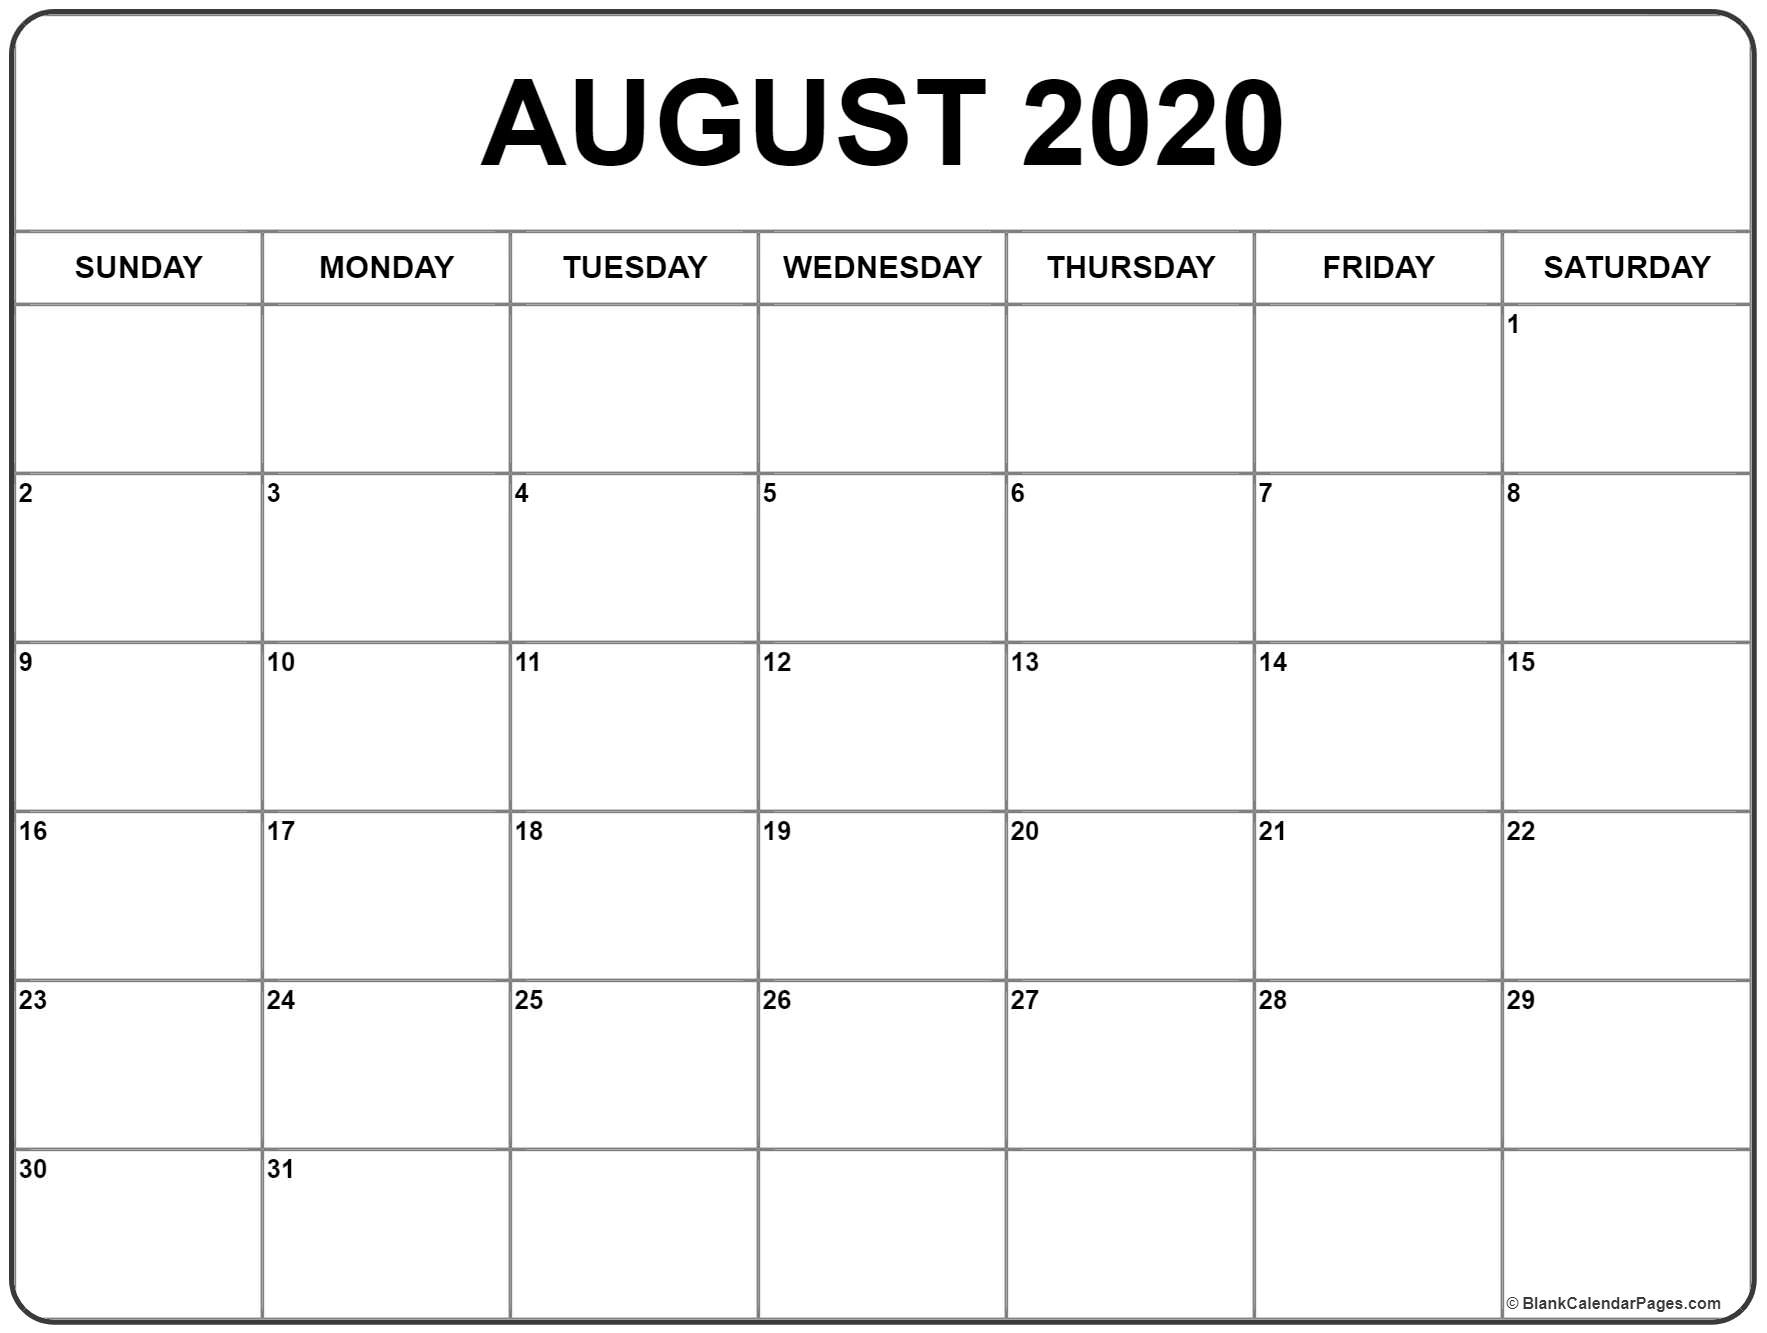 August 2020 Calendar | Free Printable Monthly Calendars_Blank Calendar August 2020 Printable